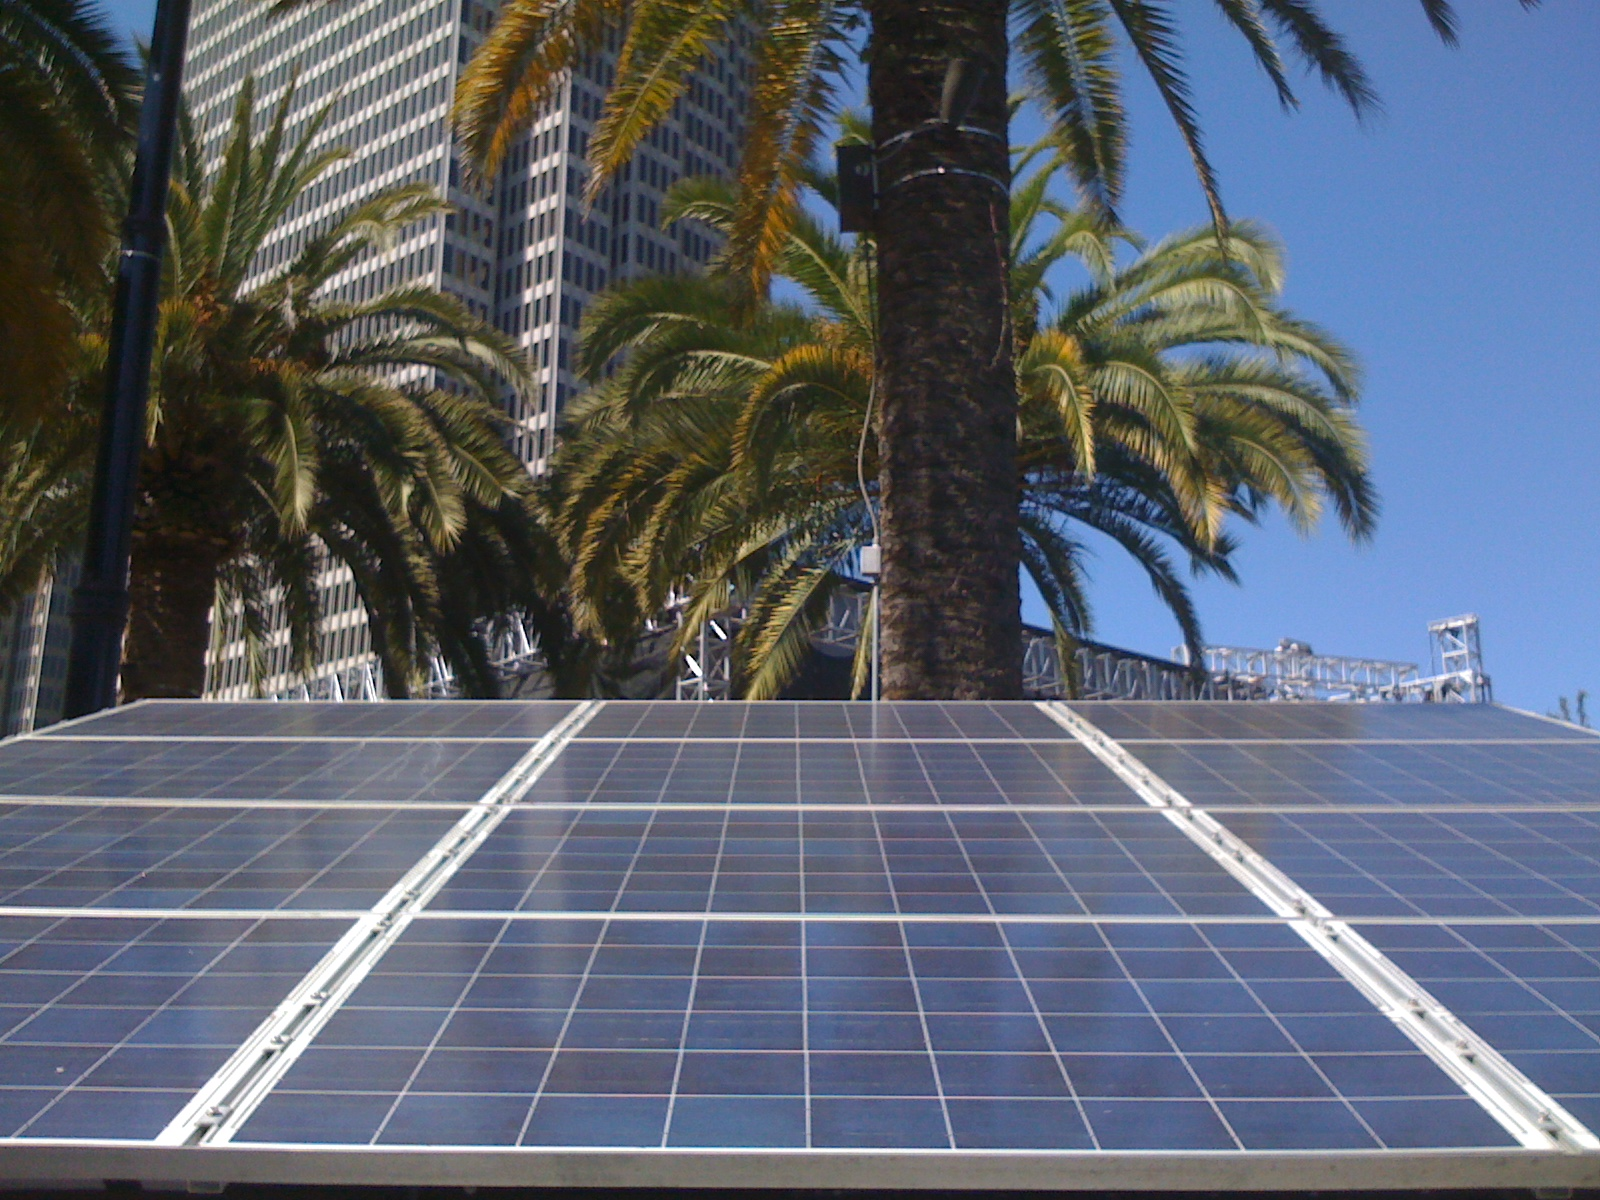 Solar PV San Francisco - Copyright Tony Seba